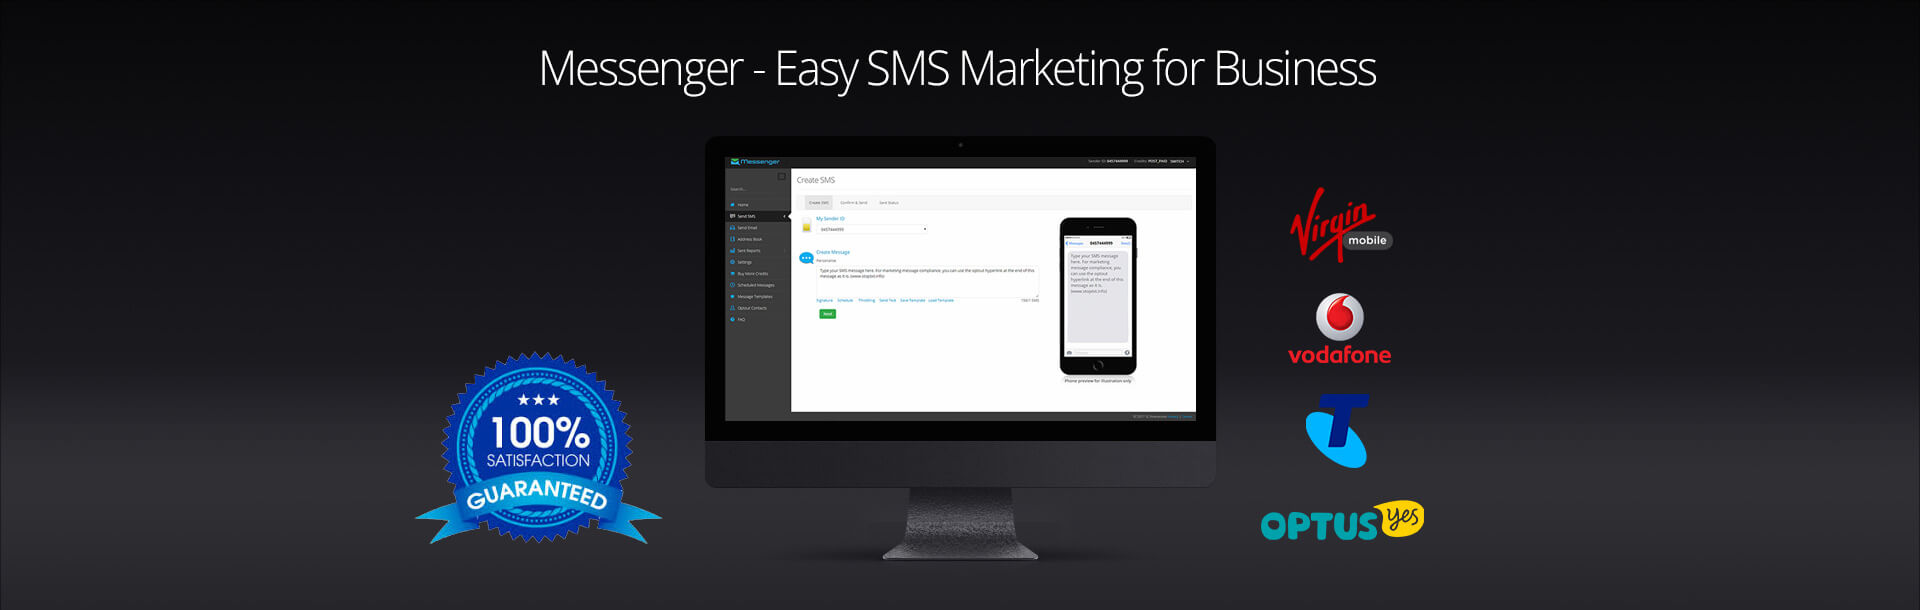 SMS Messenger - Easy SMS Messaging for Business